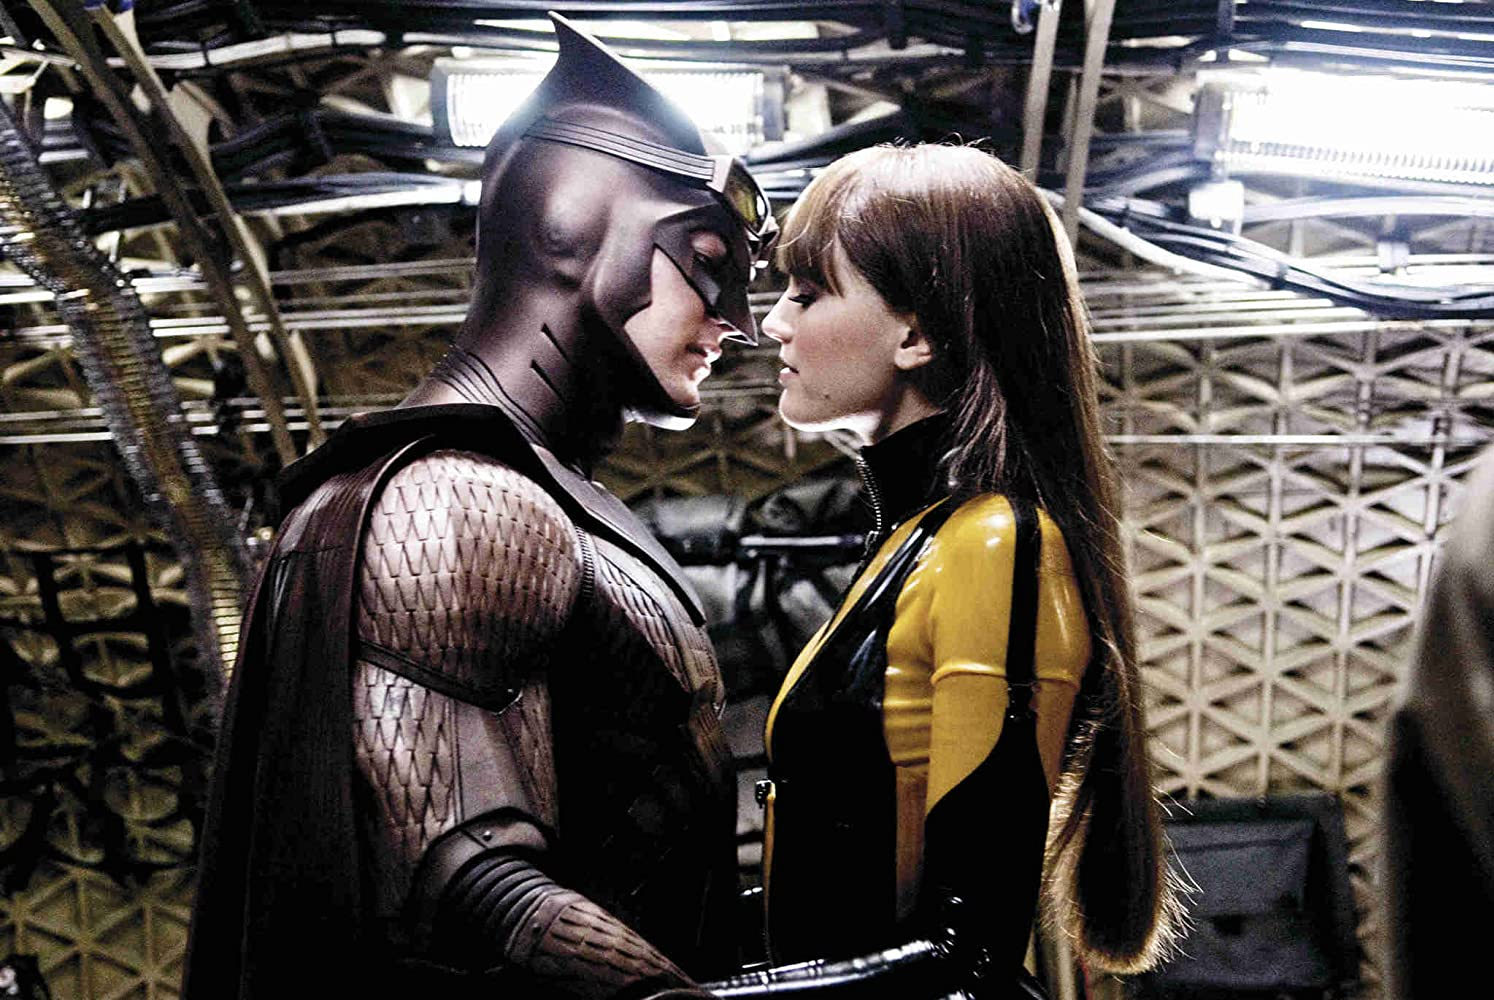 Malin Akerman and Patrick Wilson in Watchmen (2009)